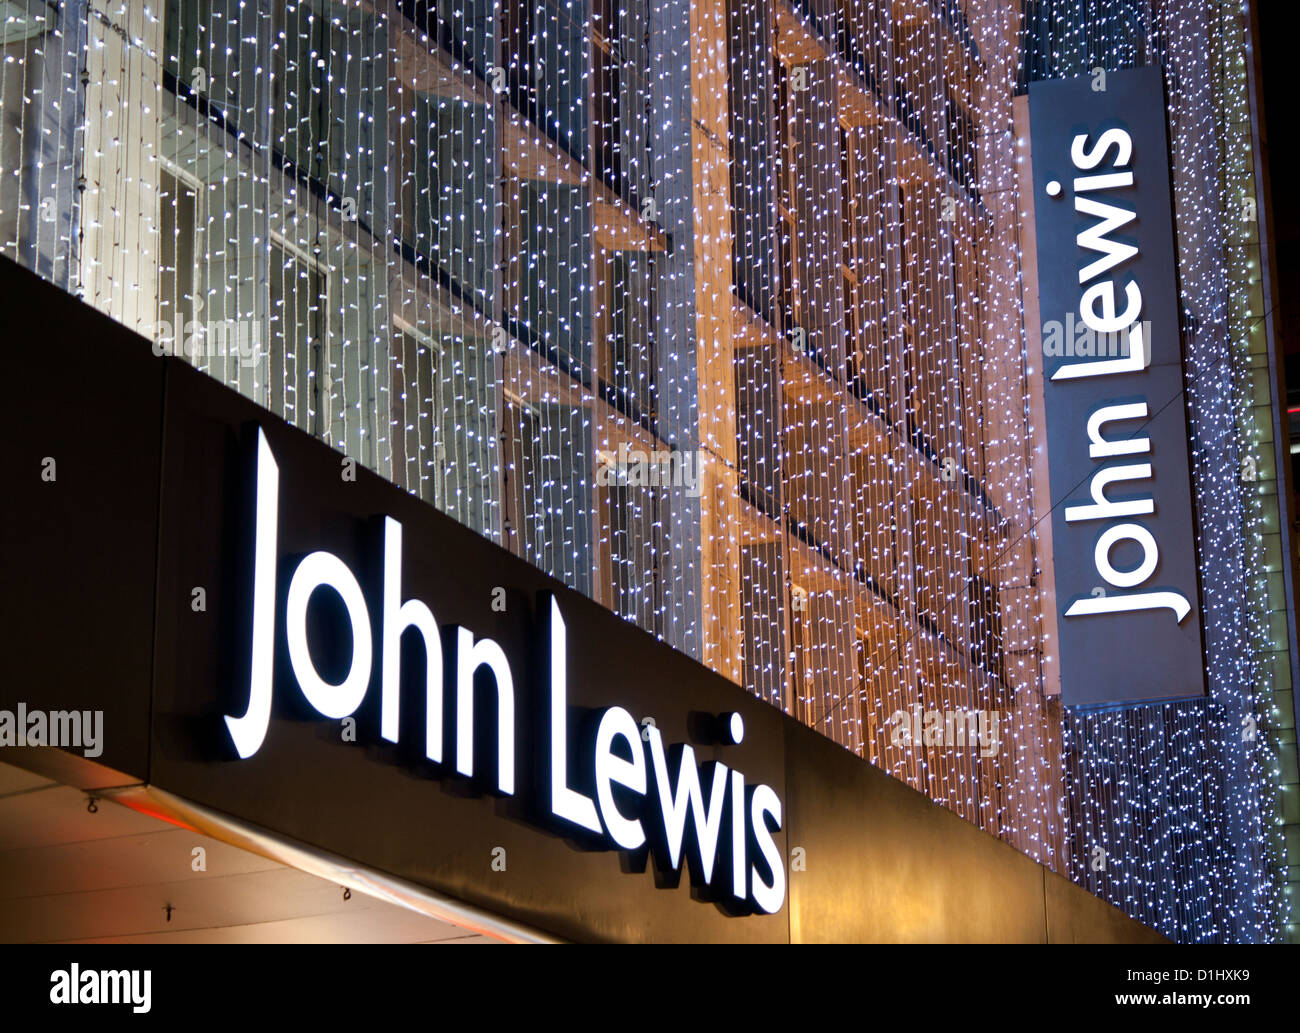 John Lewis Department Store Signs With Christmas Lighting Decorations At Night Twilight Dusk Oxford Street London England